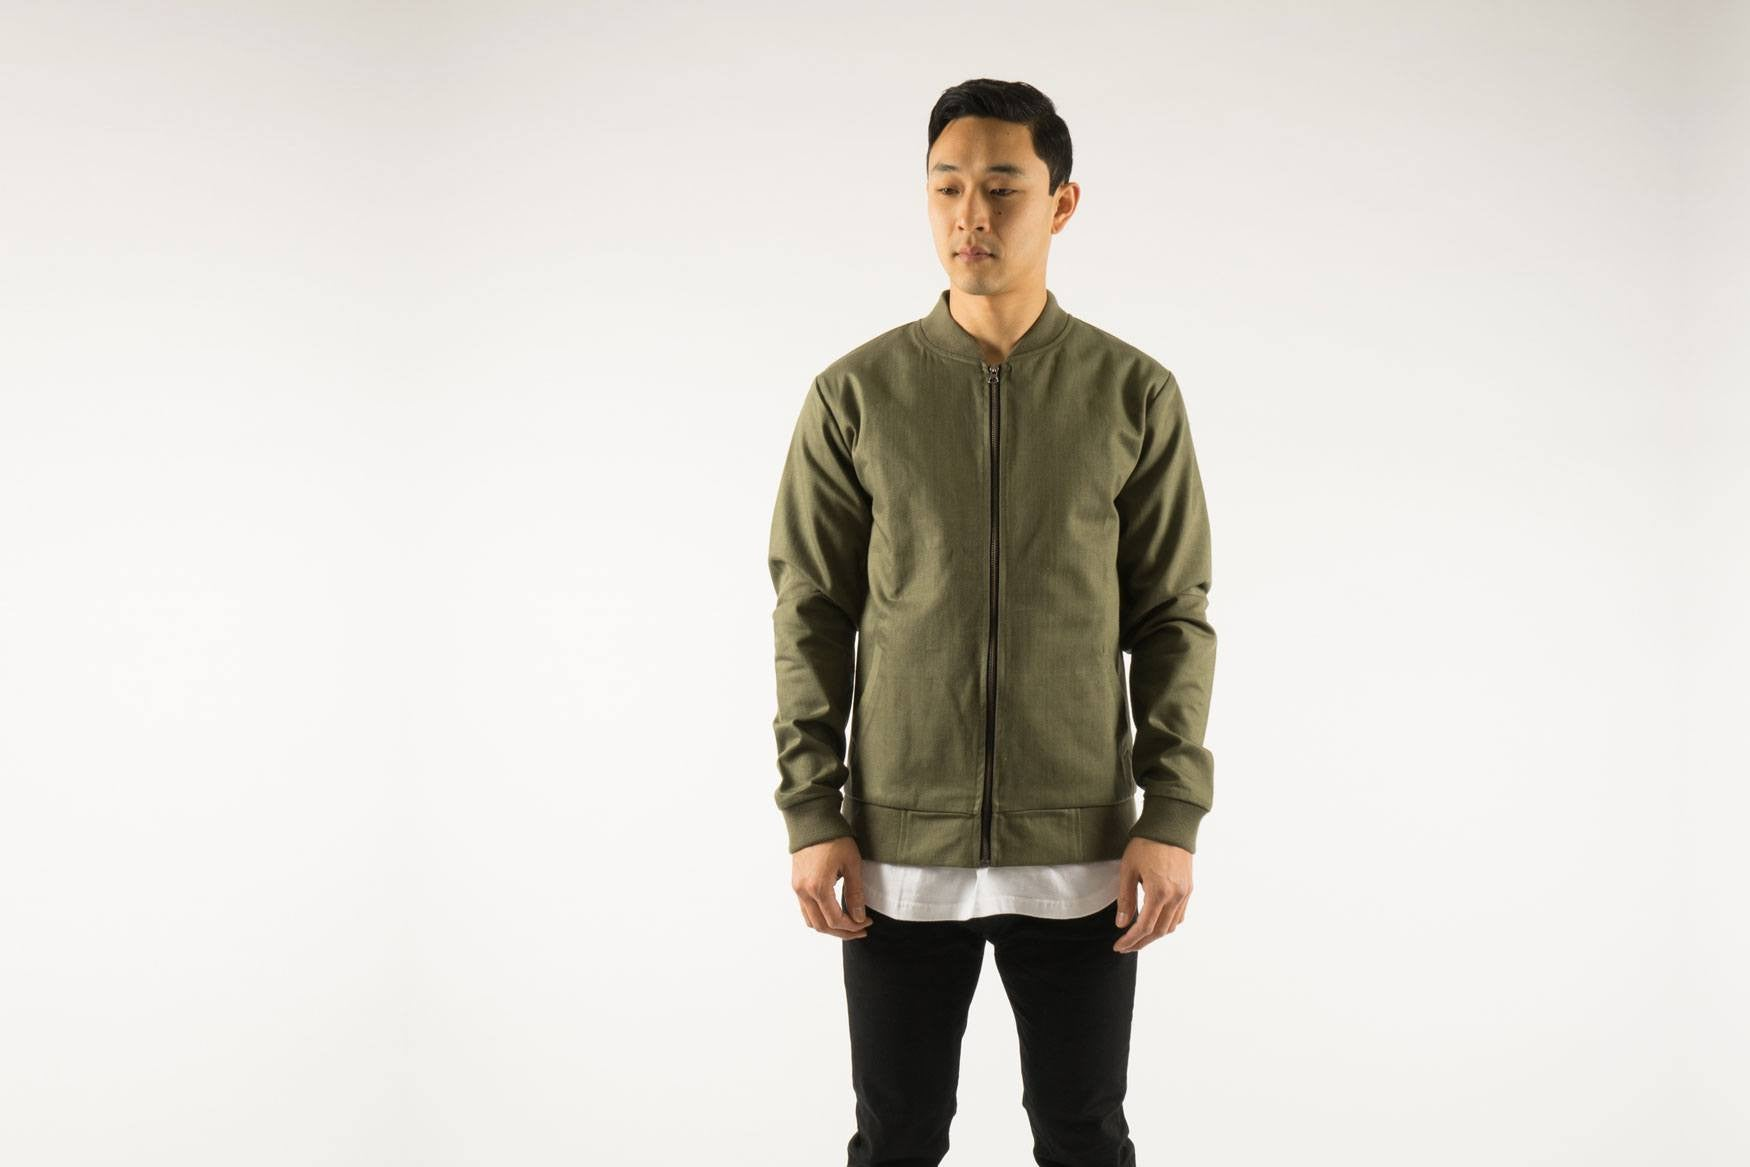 Akomplice VSOP- Cromwell Men's Bomber Jacket, Olive/Tan - The Giant Peach - 6